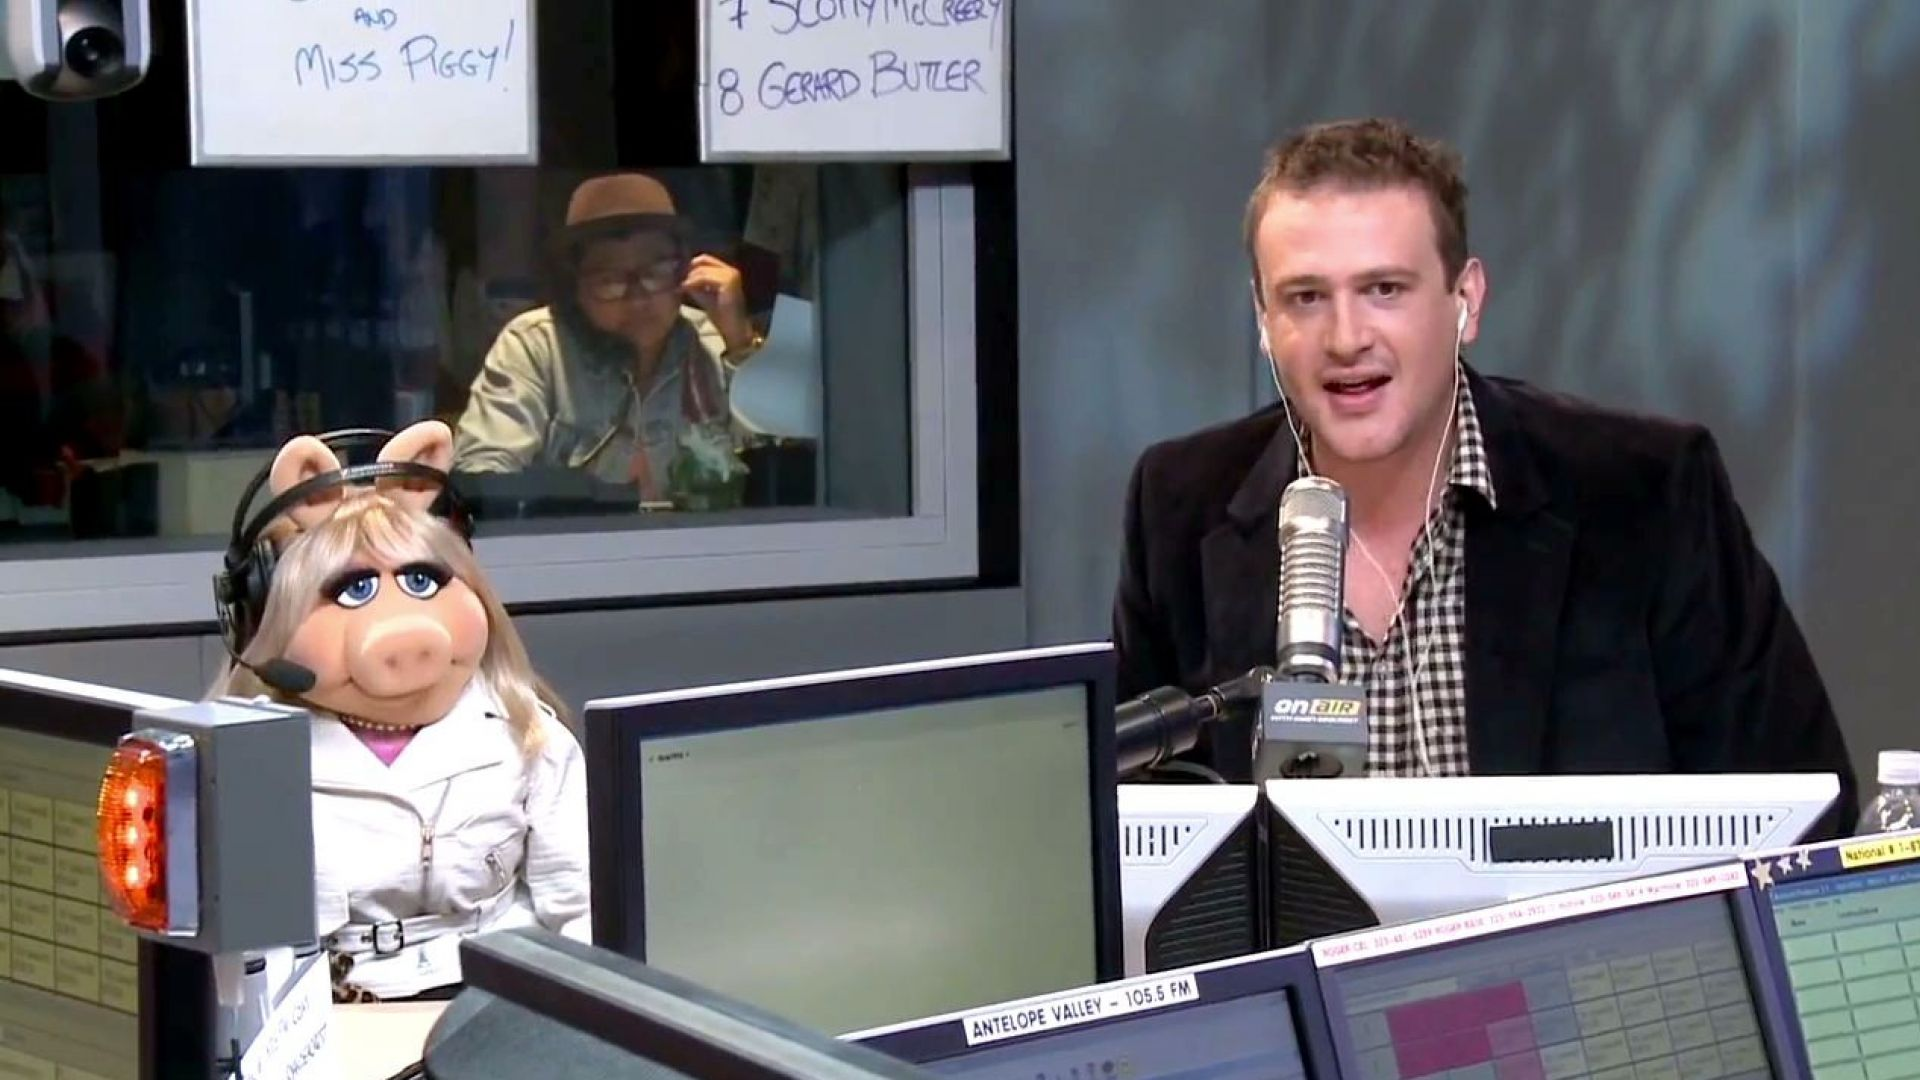 Jason Segel and Miss Piggy want a bazillion Facebook likes